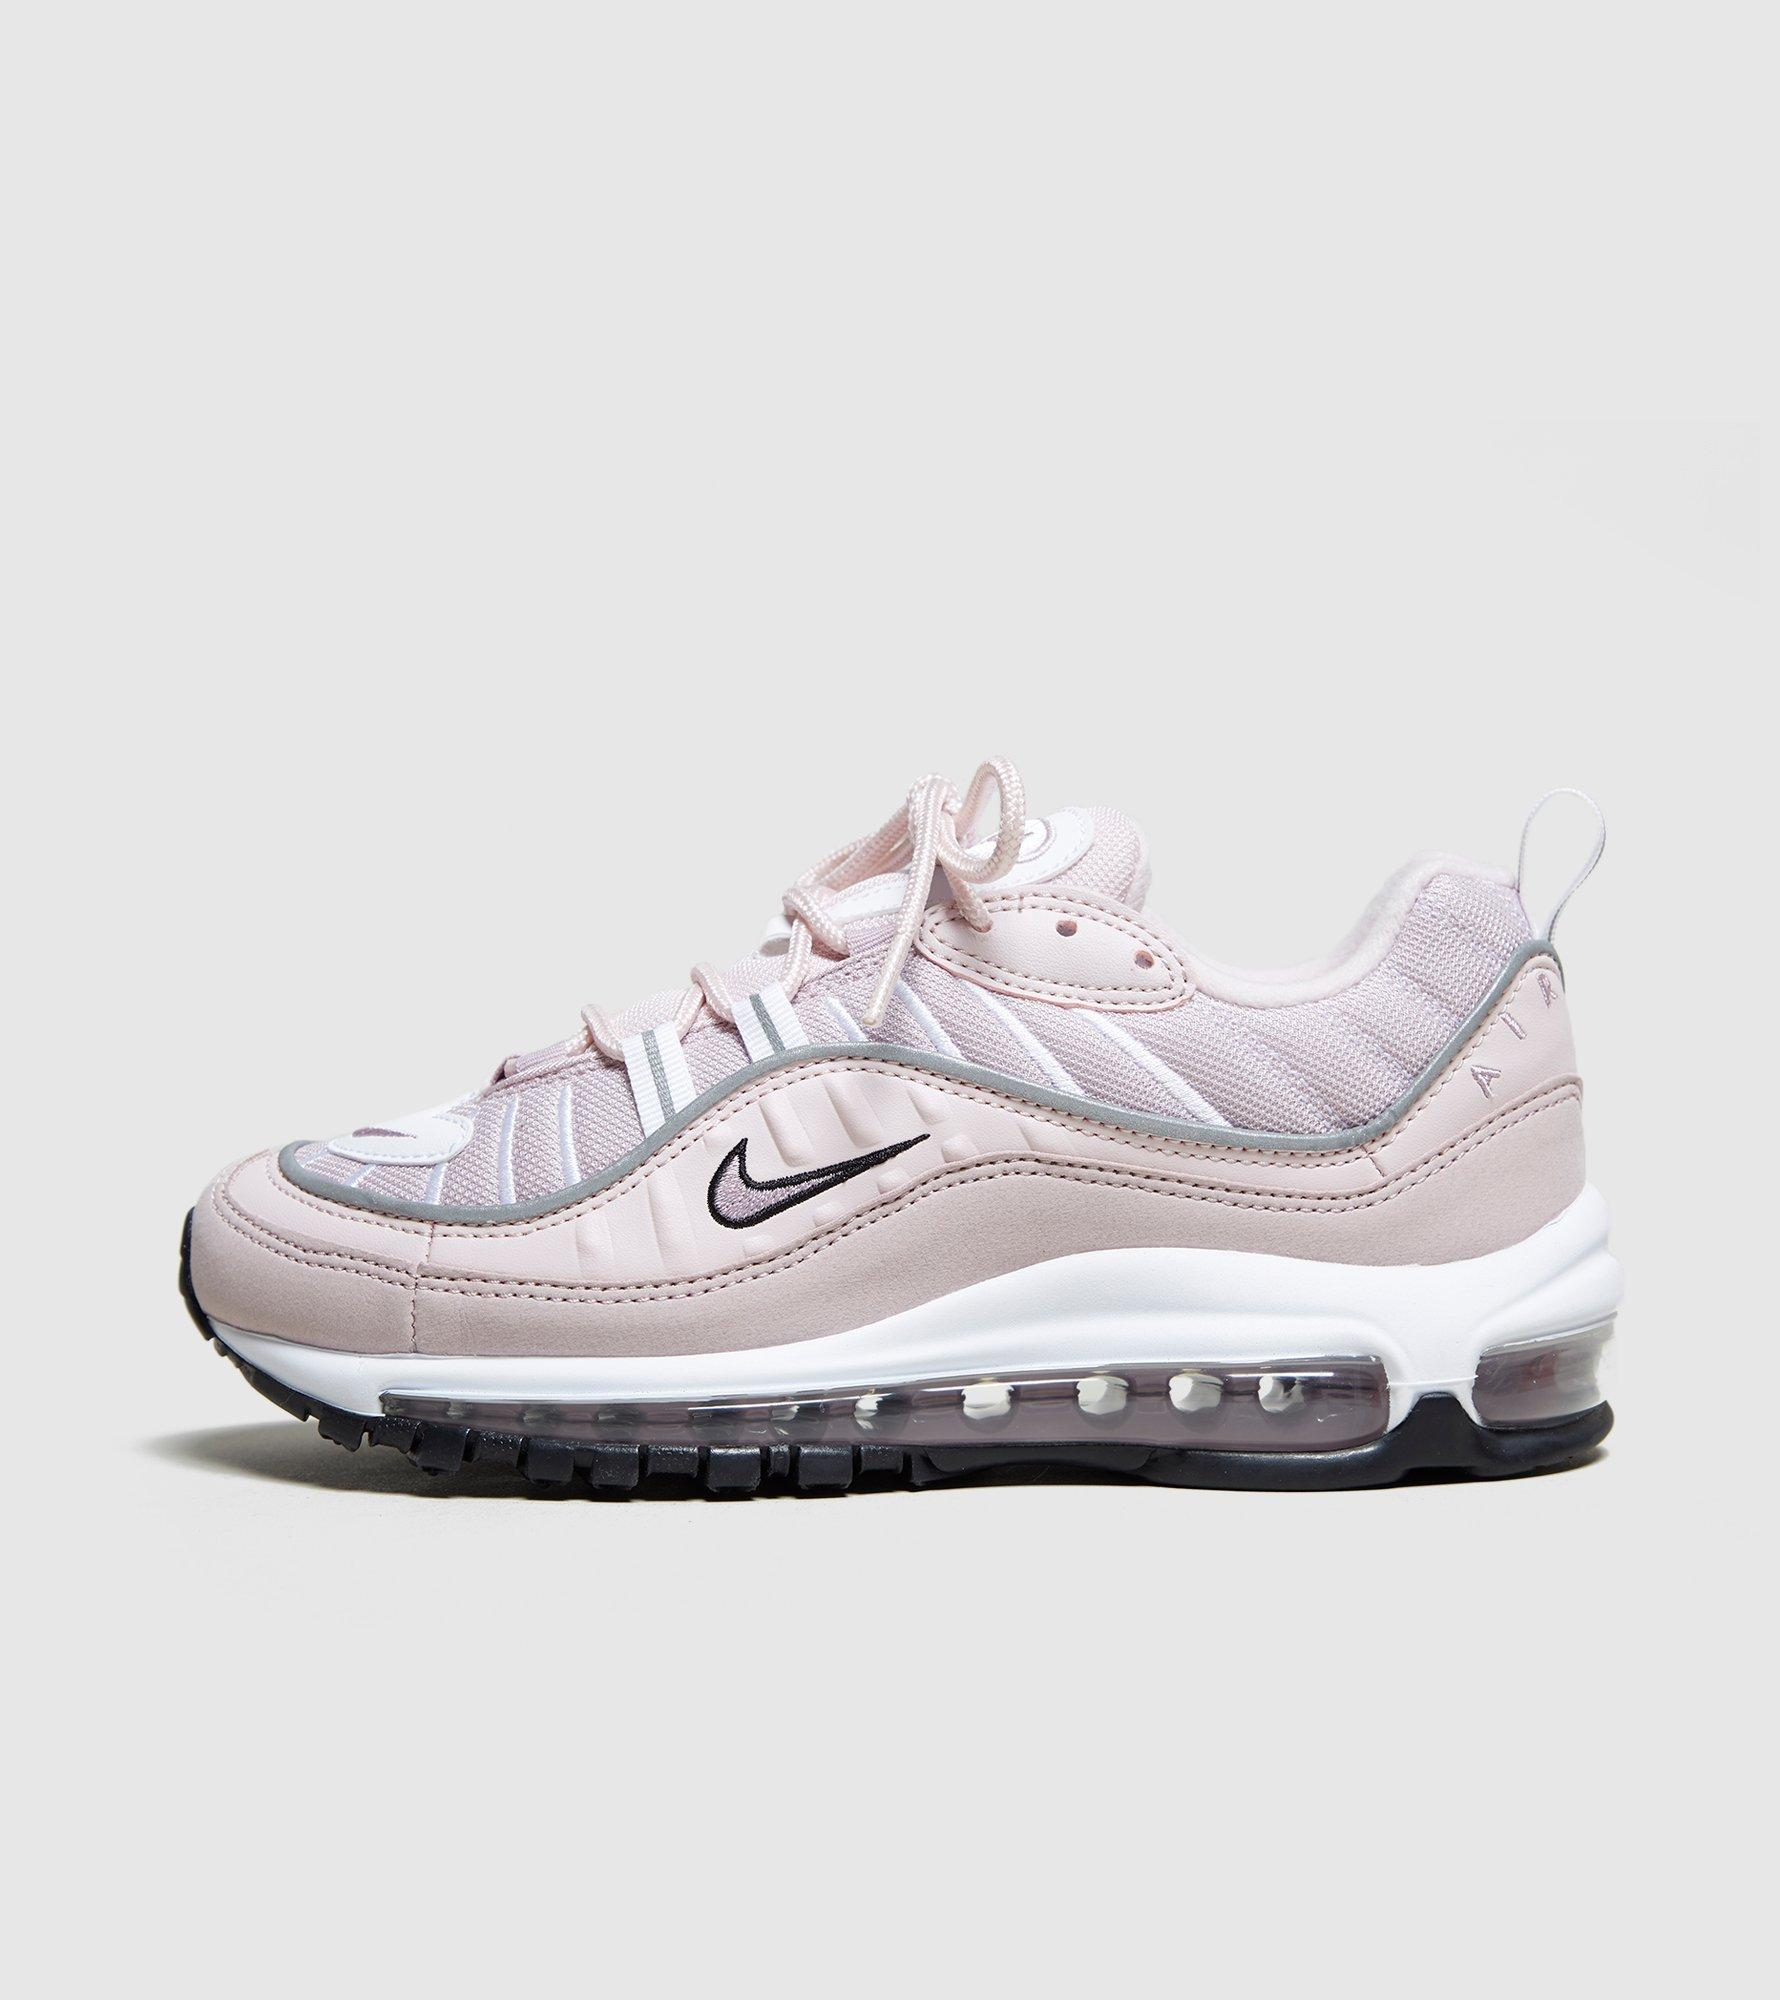 separation shoes a3f52 7440f air max 98 femme